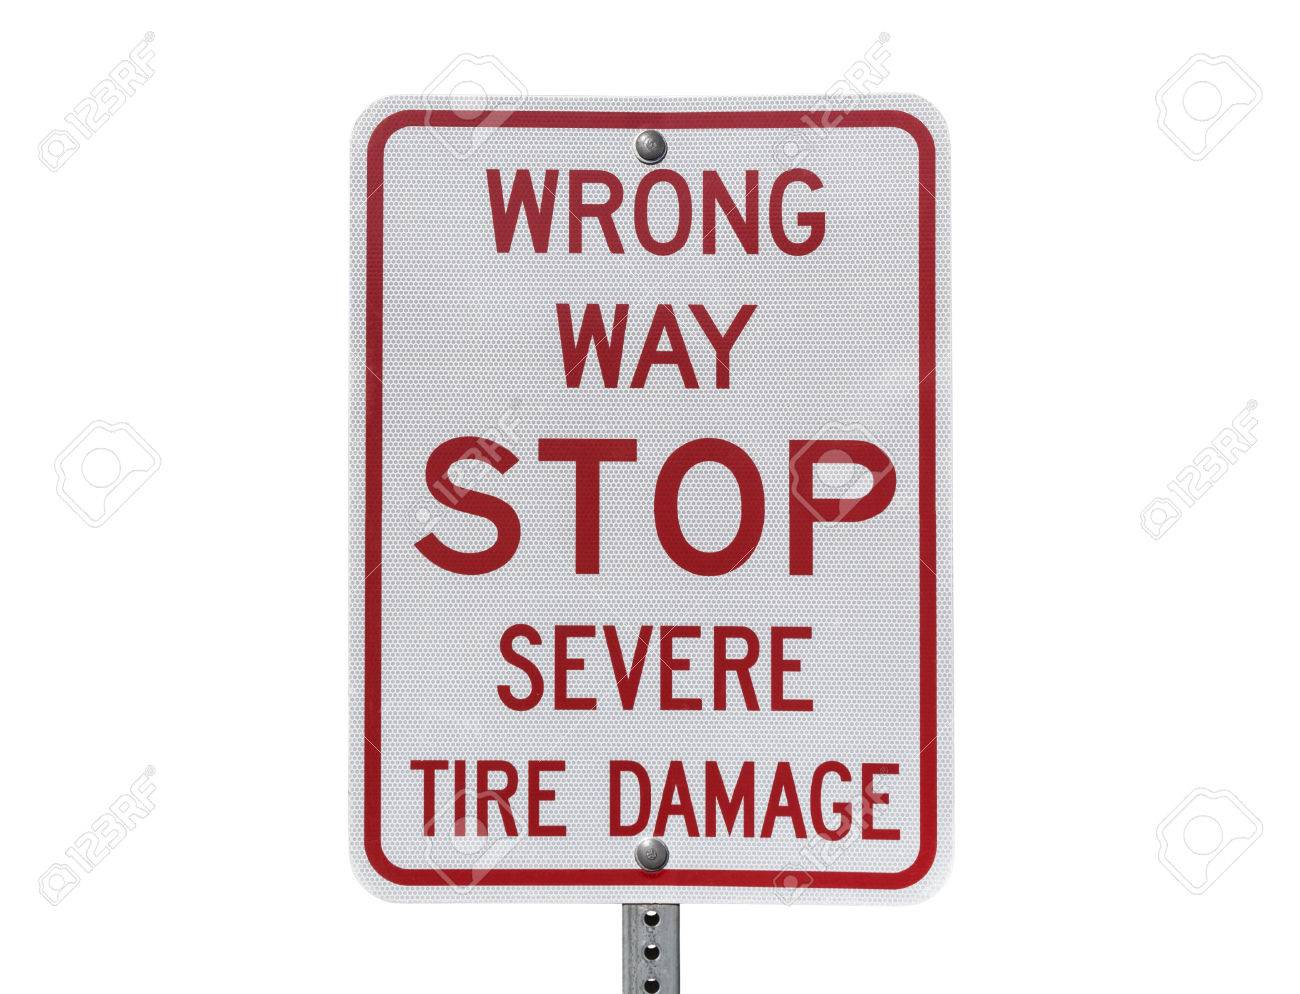 Wrong way stop severe tire damage sign Stock Photo - 23214667